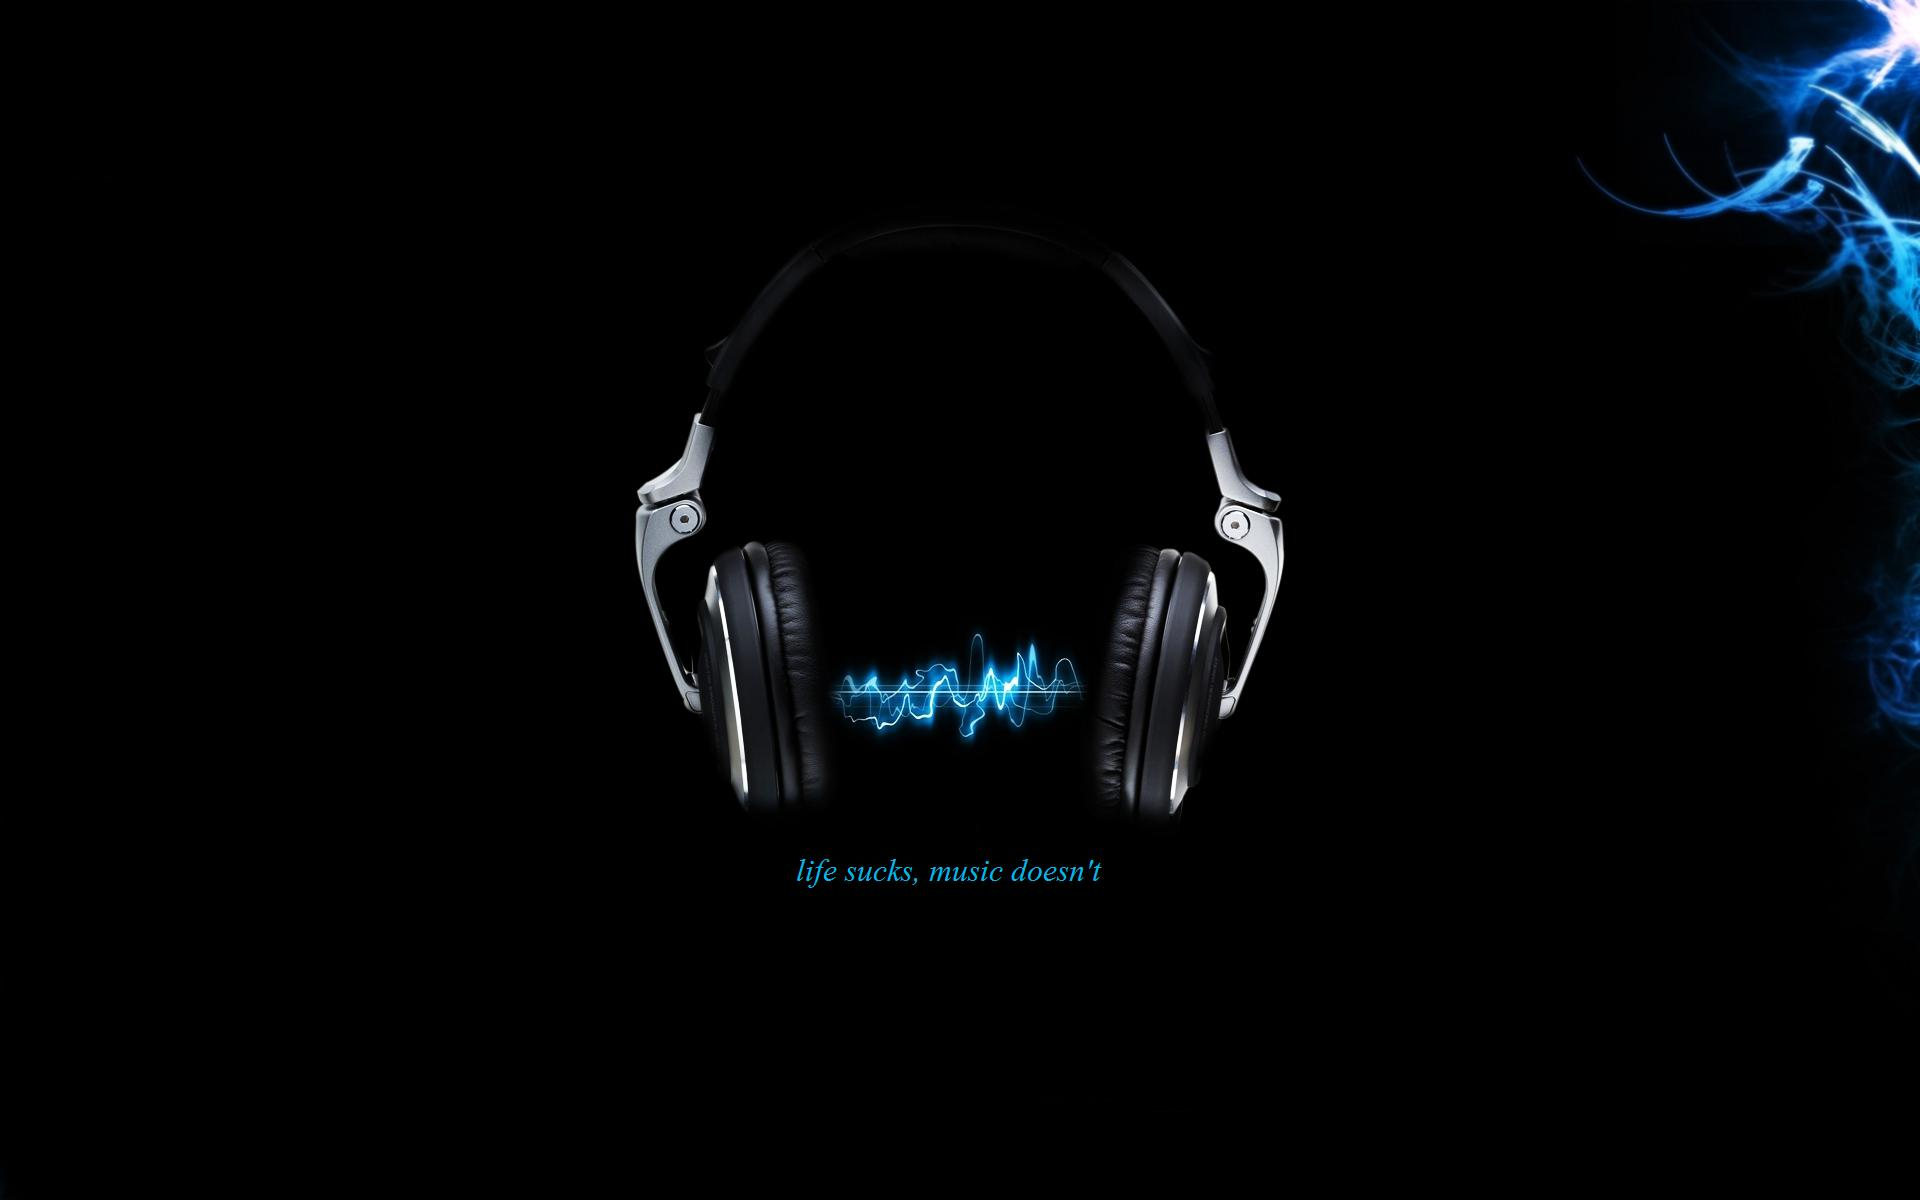 Download Wallpaper Music Headphone - 85006  Snapshot_524577.jpg